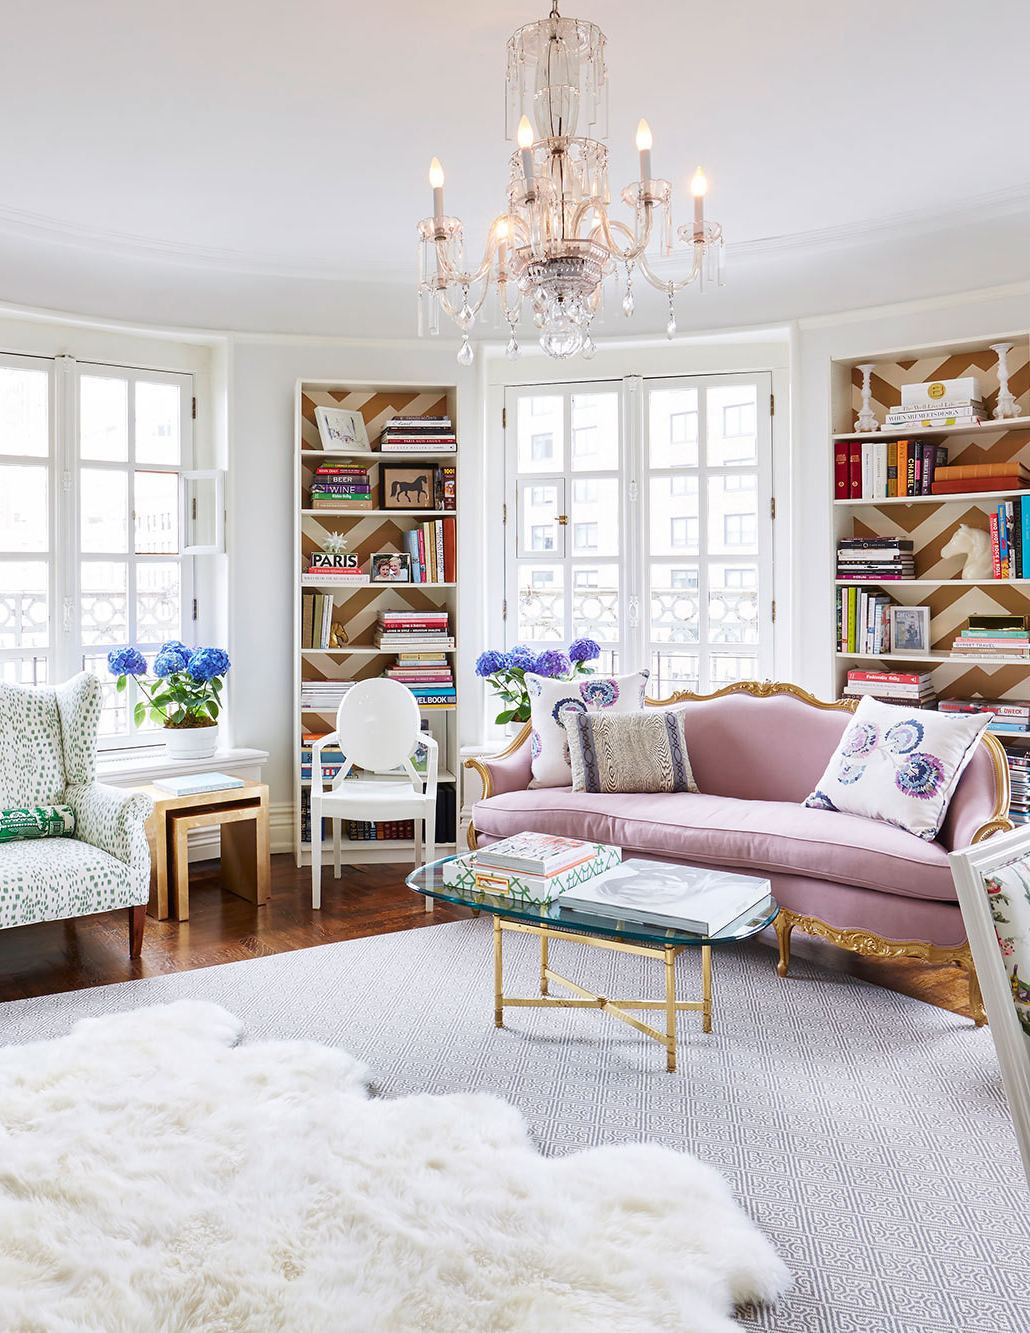 Living Room Inspiration Pastel Home in Cosmopolitan NYC (1) living room inspiration Living Room Inspiration: Pastel Home in Cosmopolitan NYC Living Room Inspiration Pastel Home in Cosmopolitan NYC 1